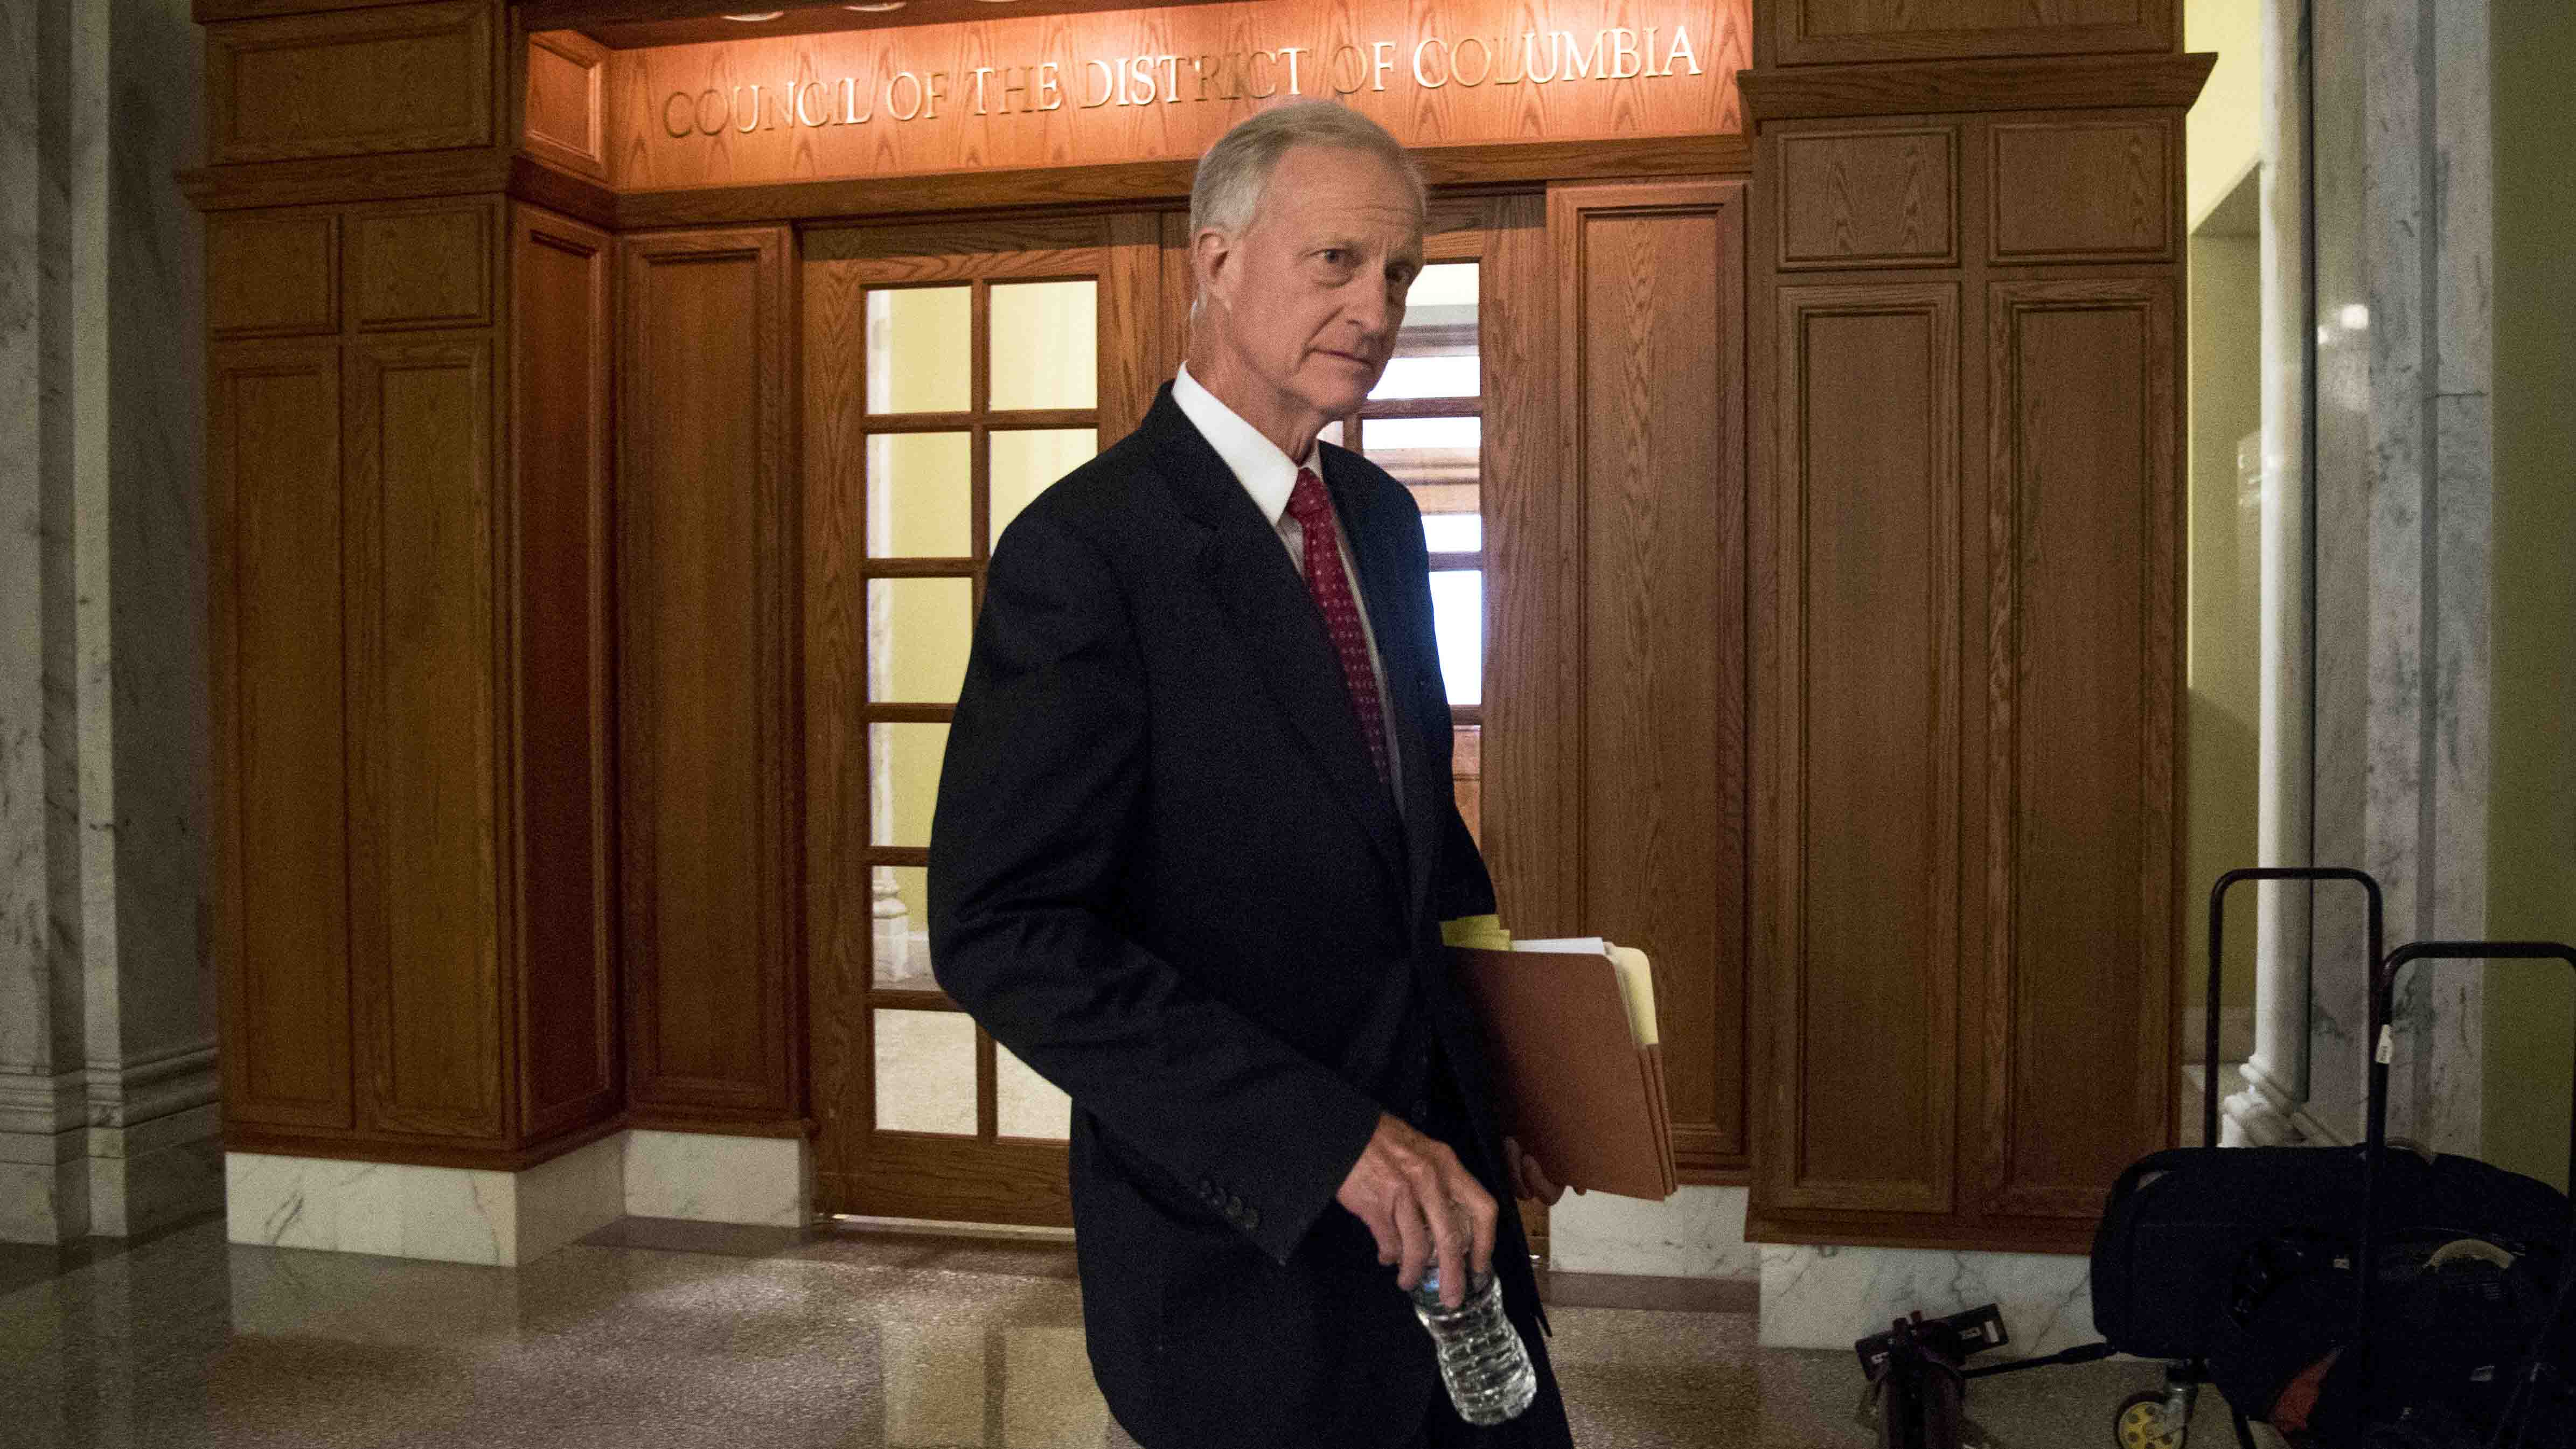 Former DC Council Member Jack Evans Agrees to Pay $35K Fine to Board of Ethics